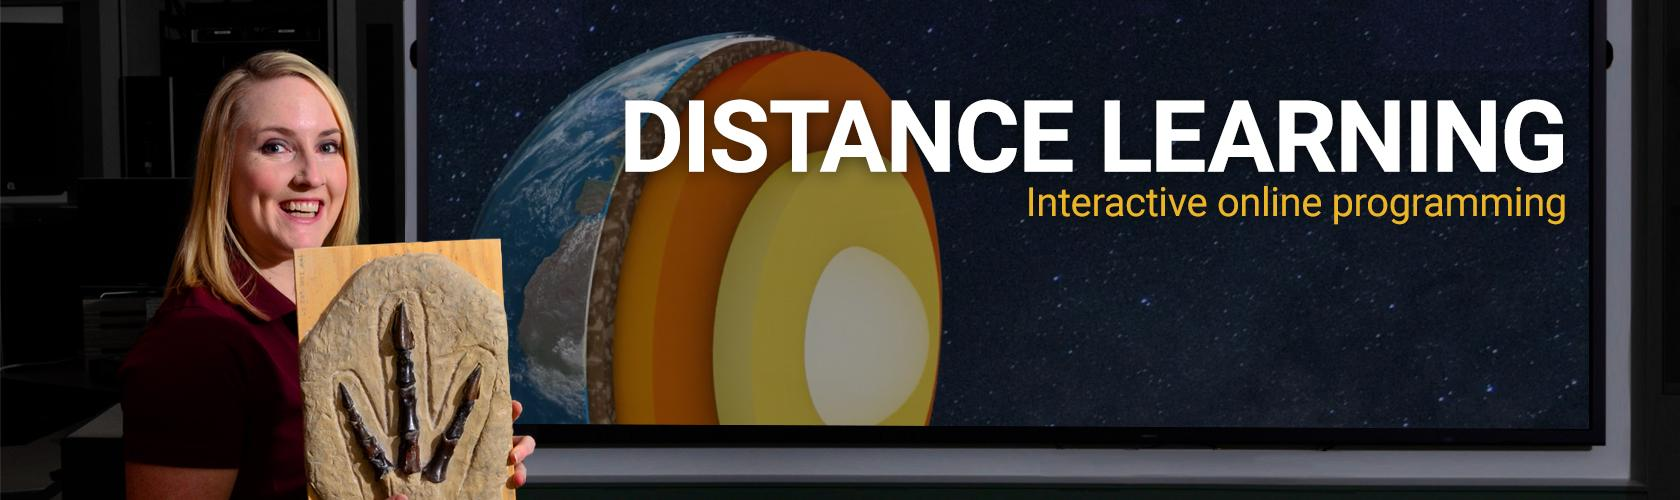 distance-learning-slider